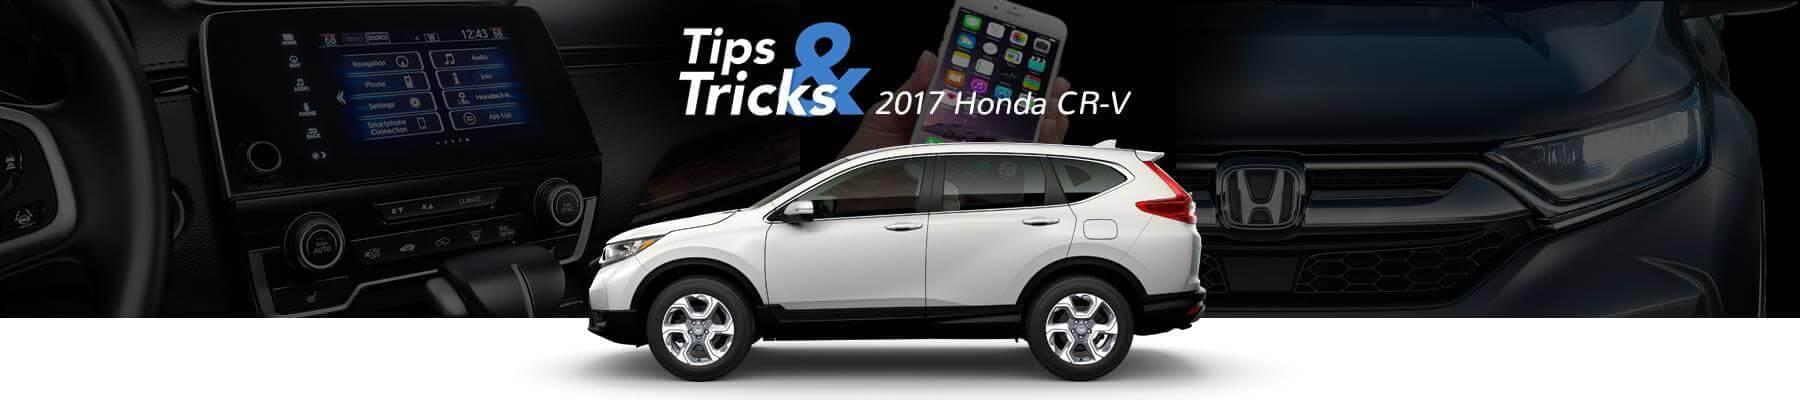 2017 Honda CR-V Tips and Tricks